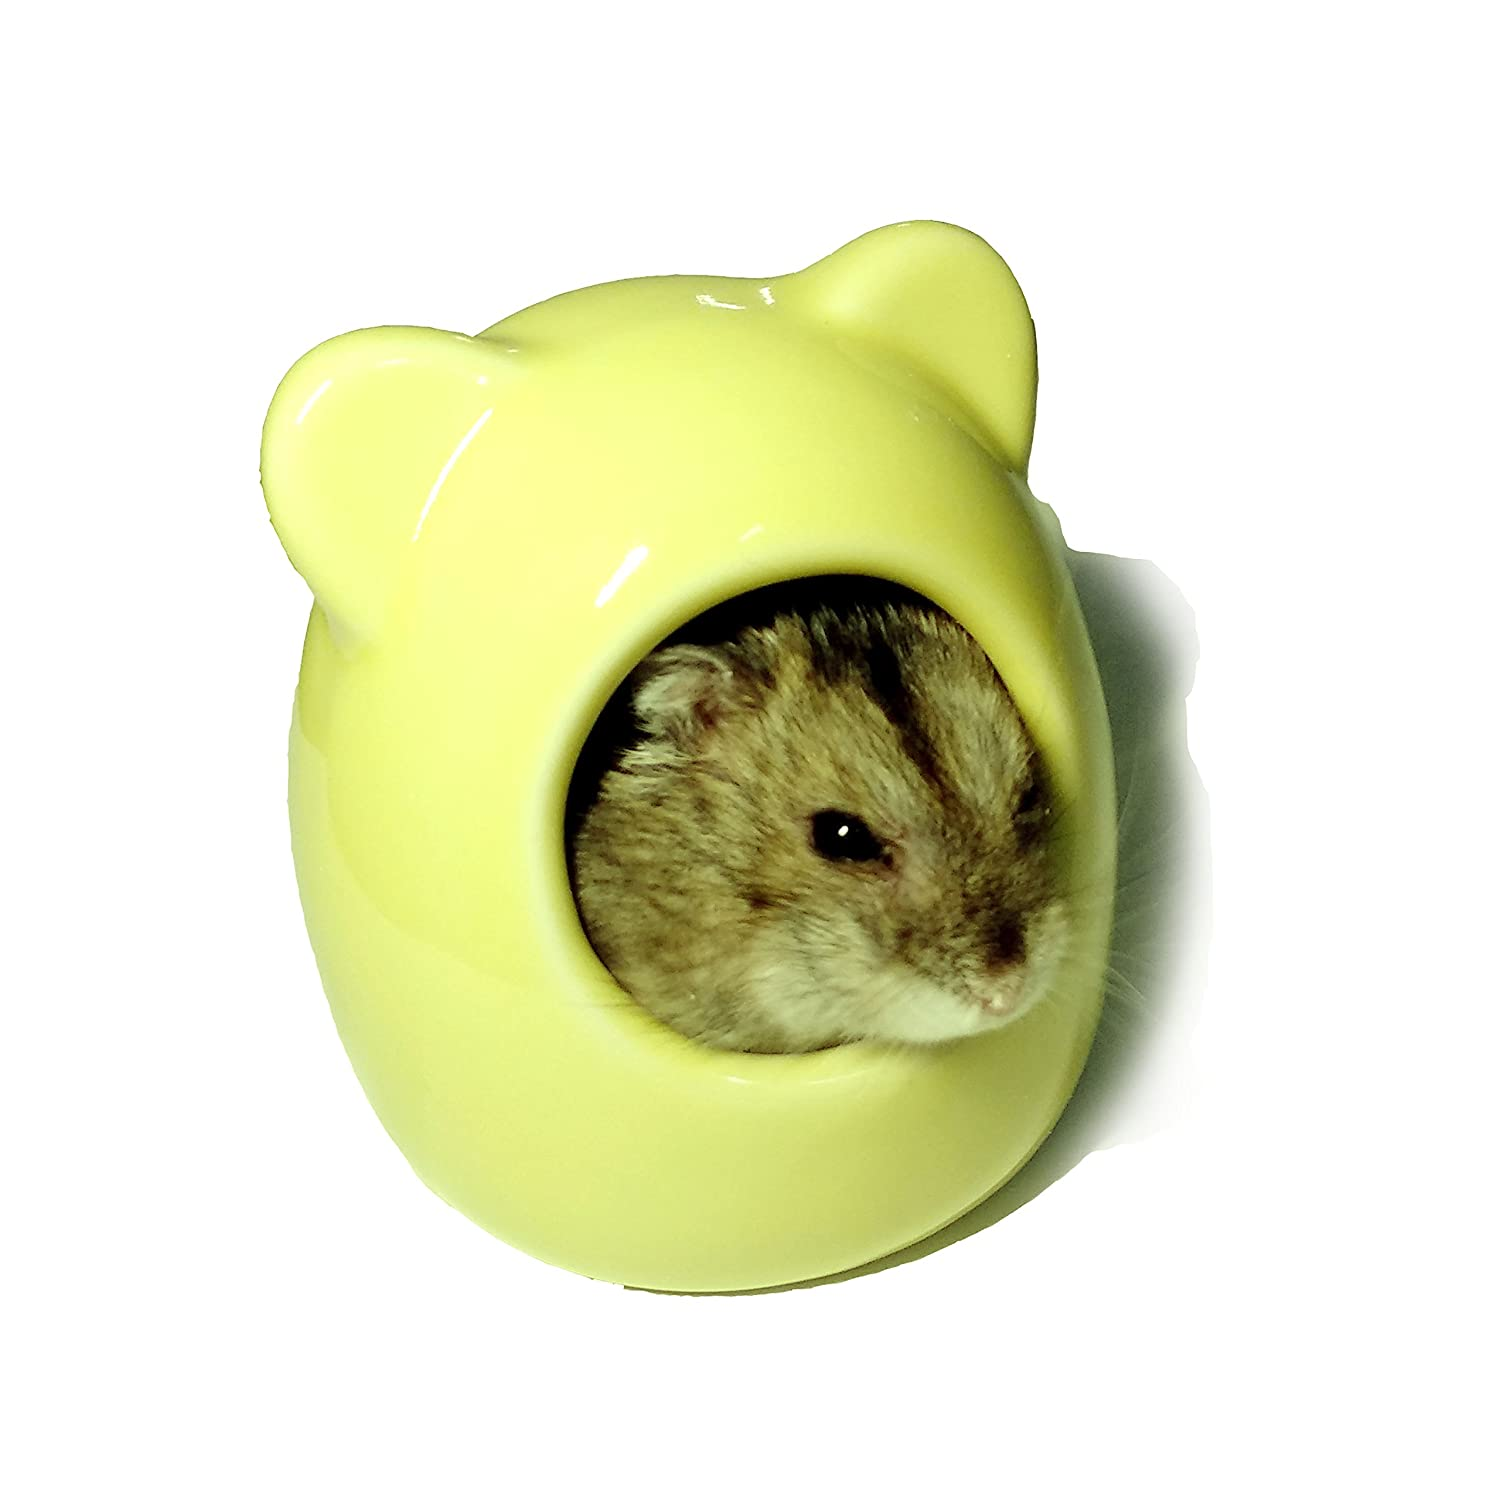 Sometime Summer Chinaware Hamster House, Ceramic Critter Bath for Small Pet